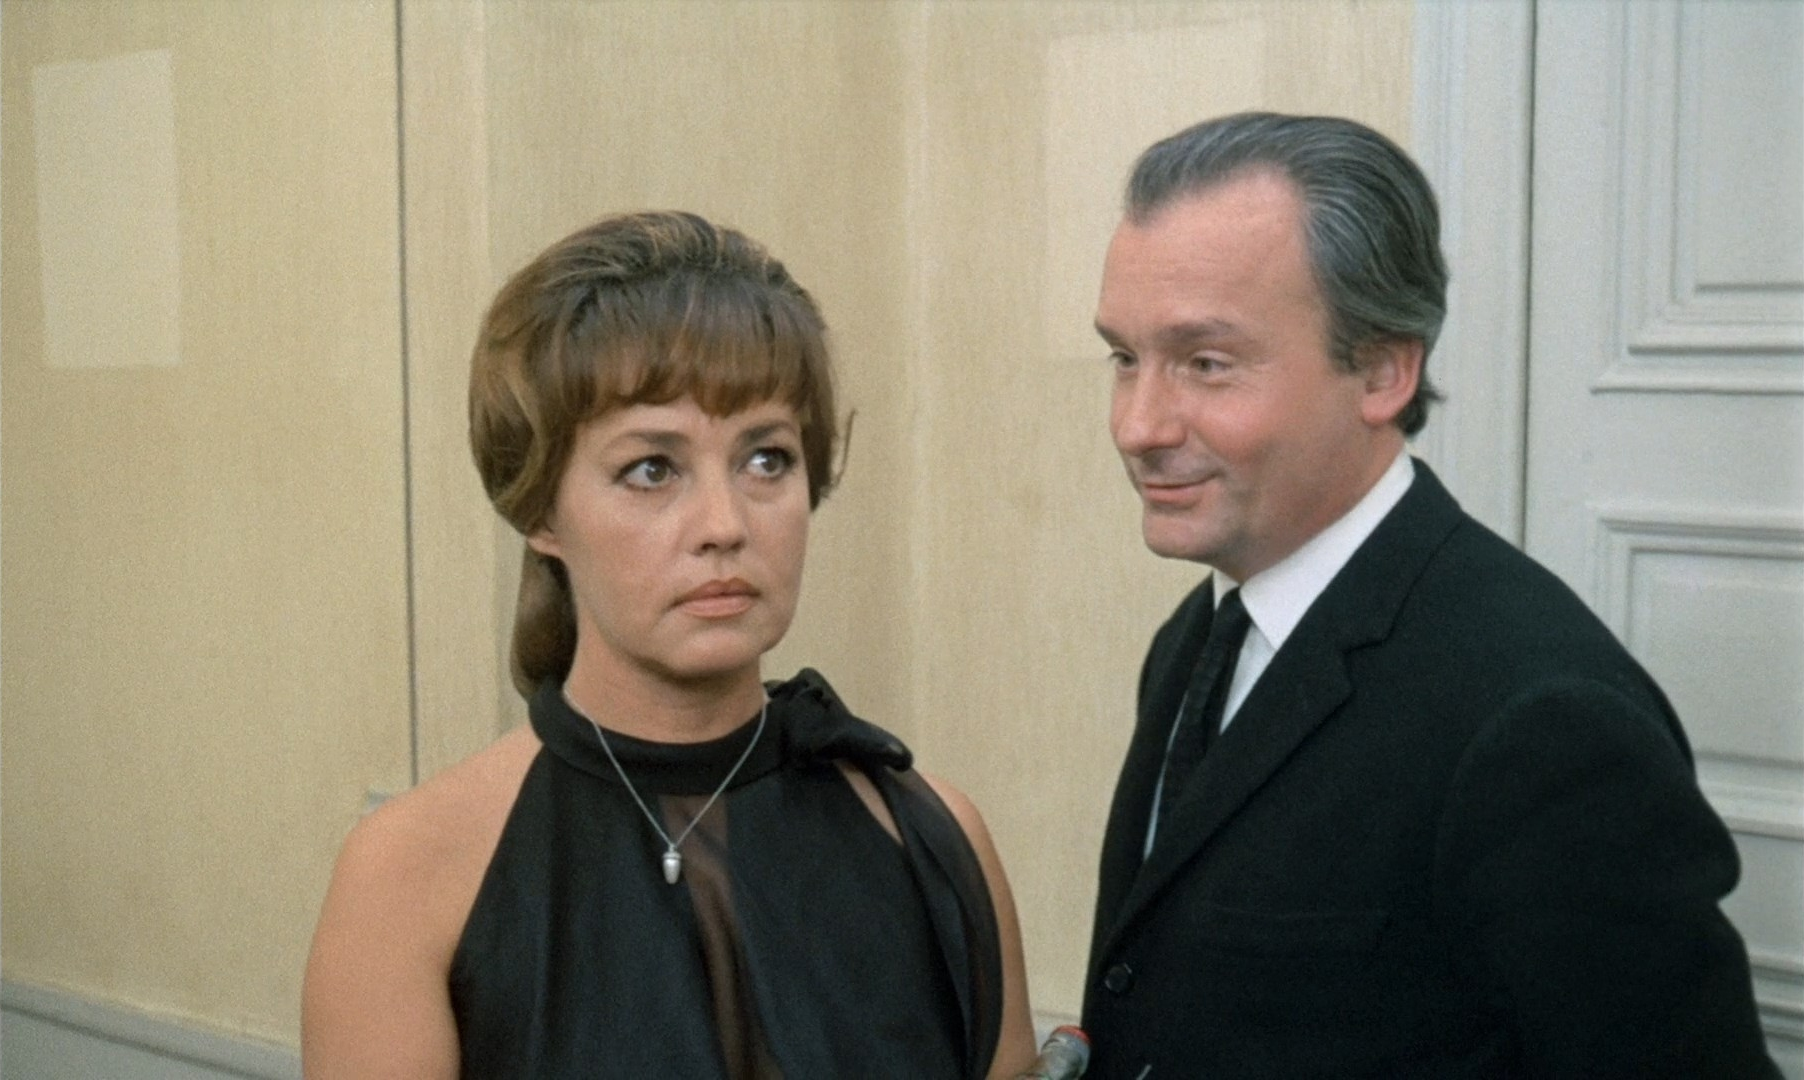 The Bride Wore Black - Jeanne Moreau & Michel Bouquet